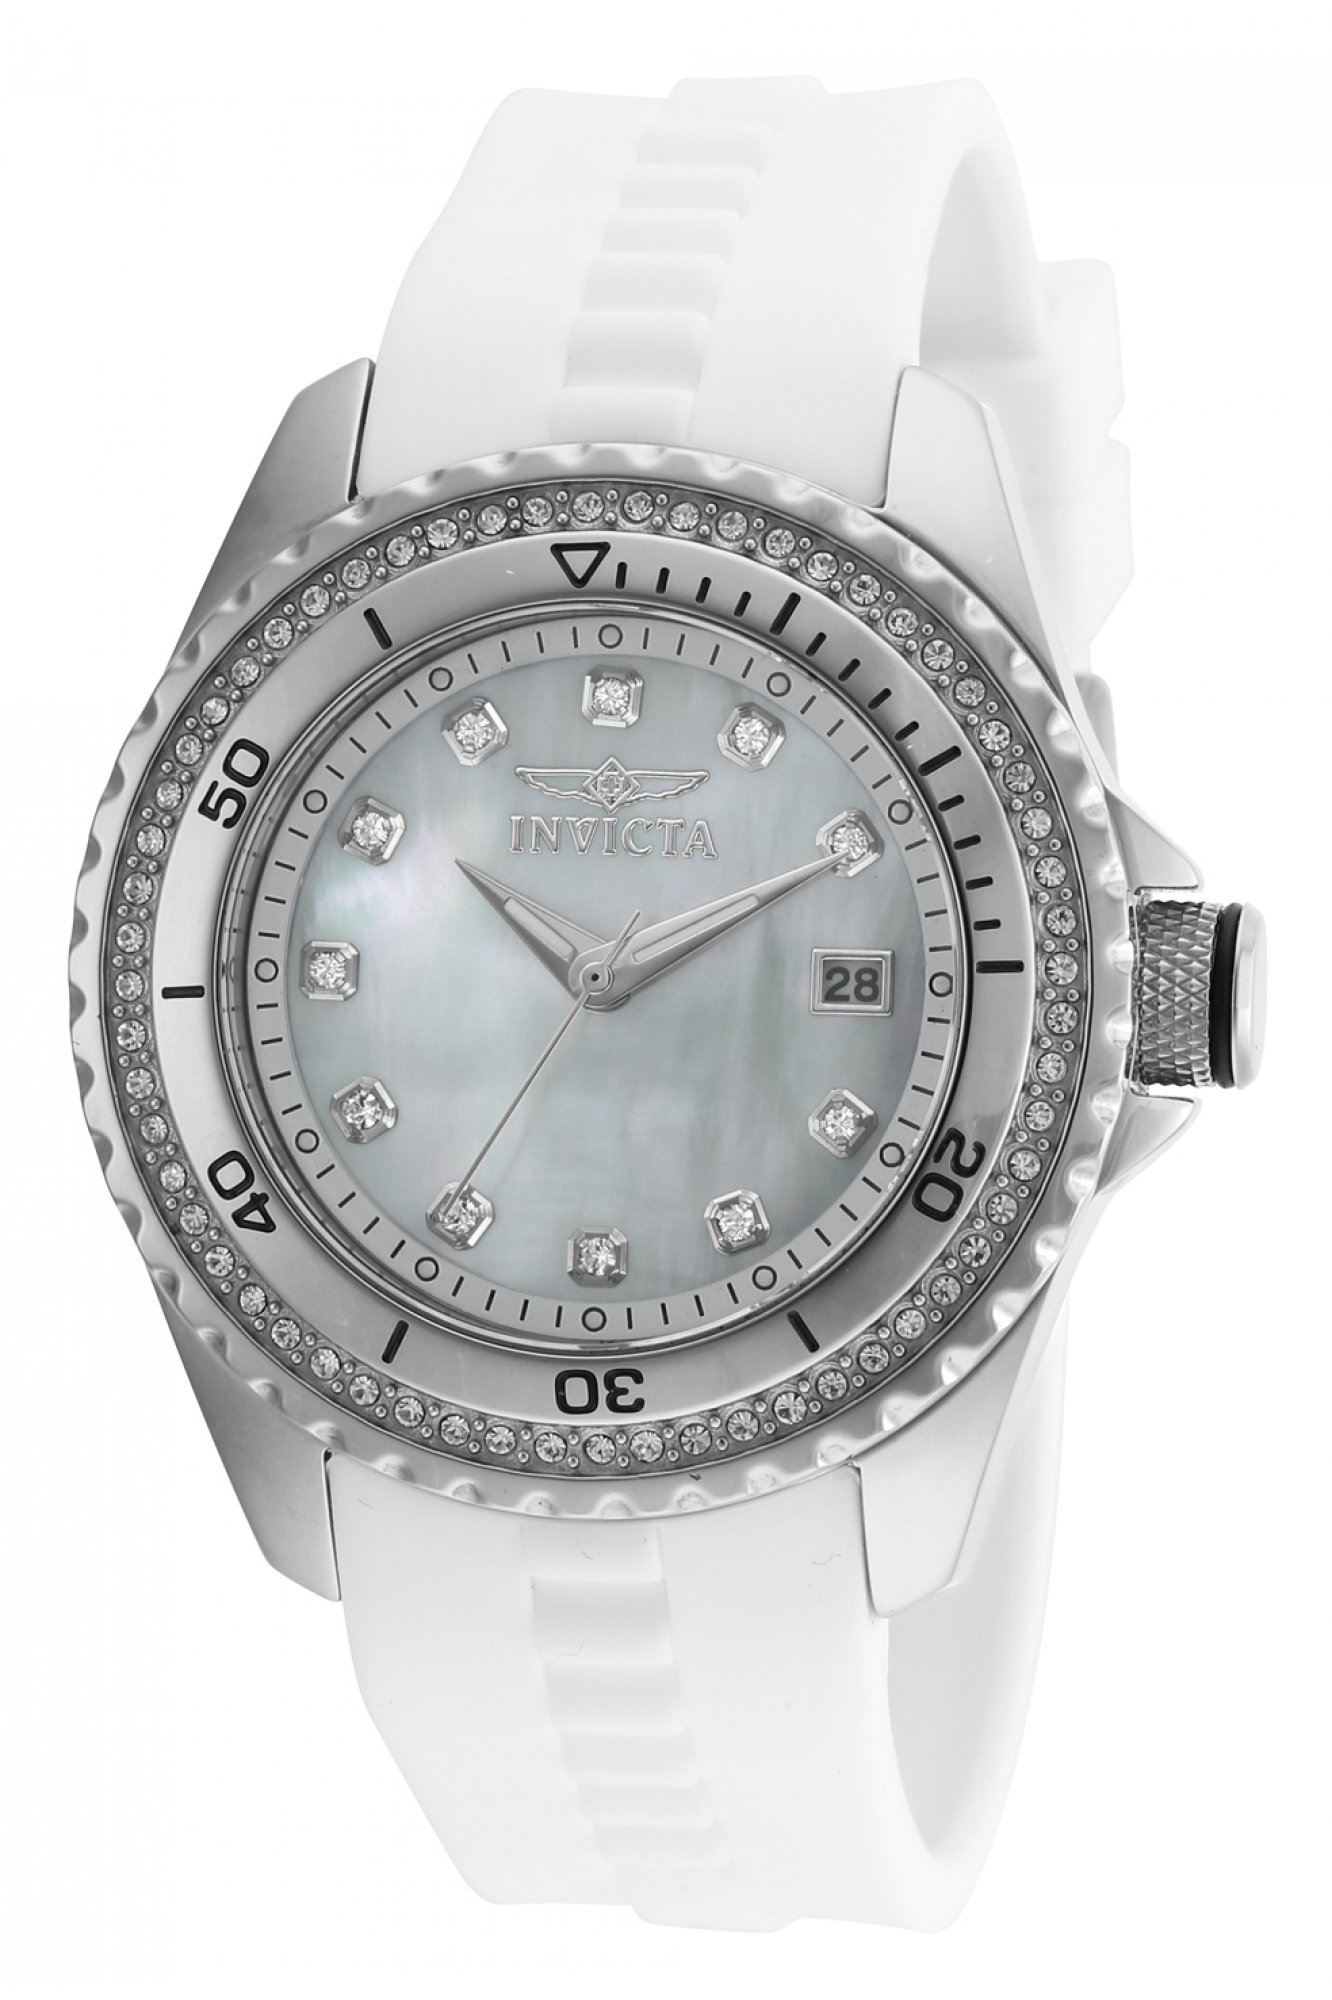 Invicta Wildflower 21415 Montre Femme  - 40mm